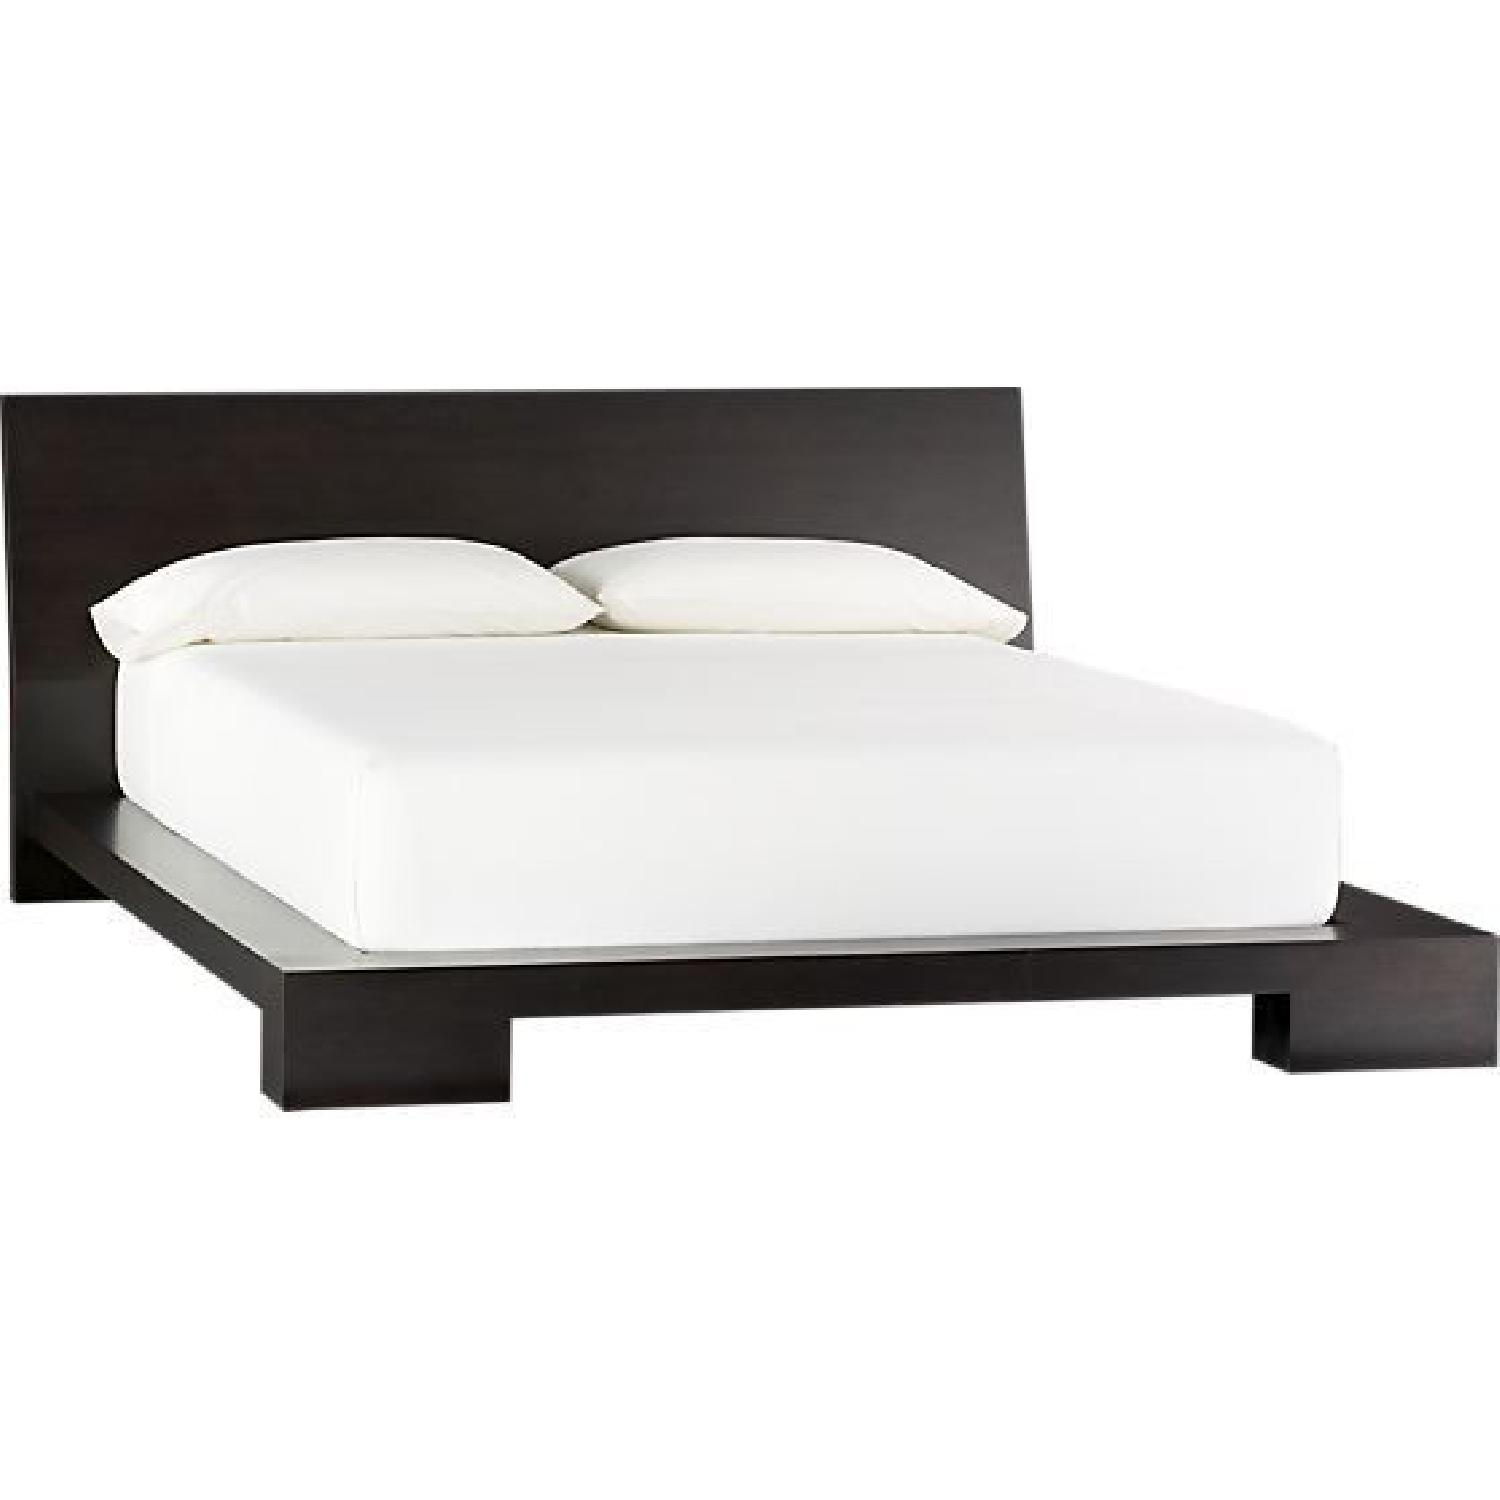 Crate & Barrel Asher Queen Size Bed Frame